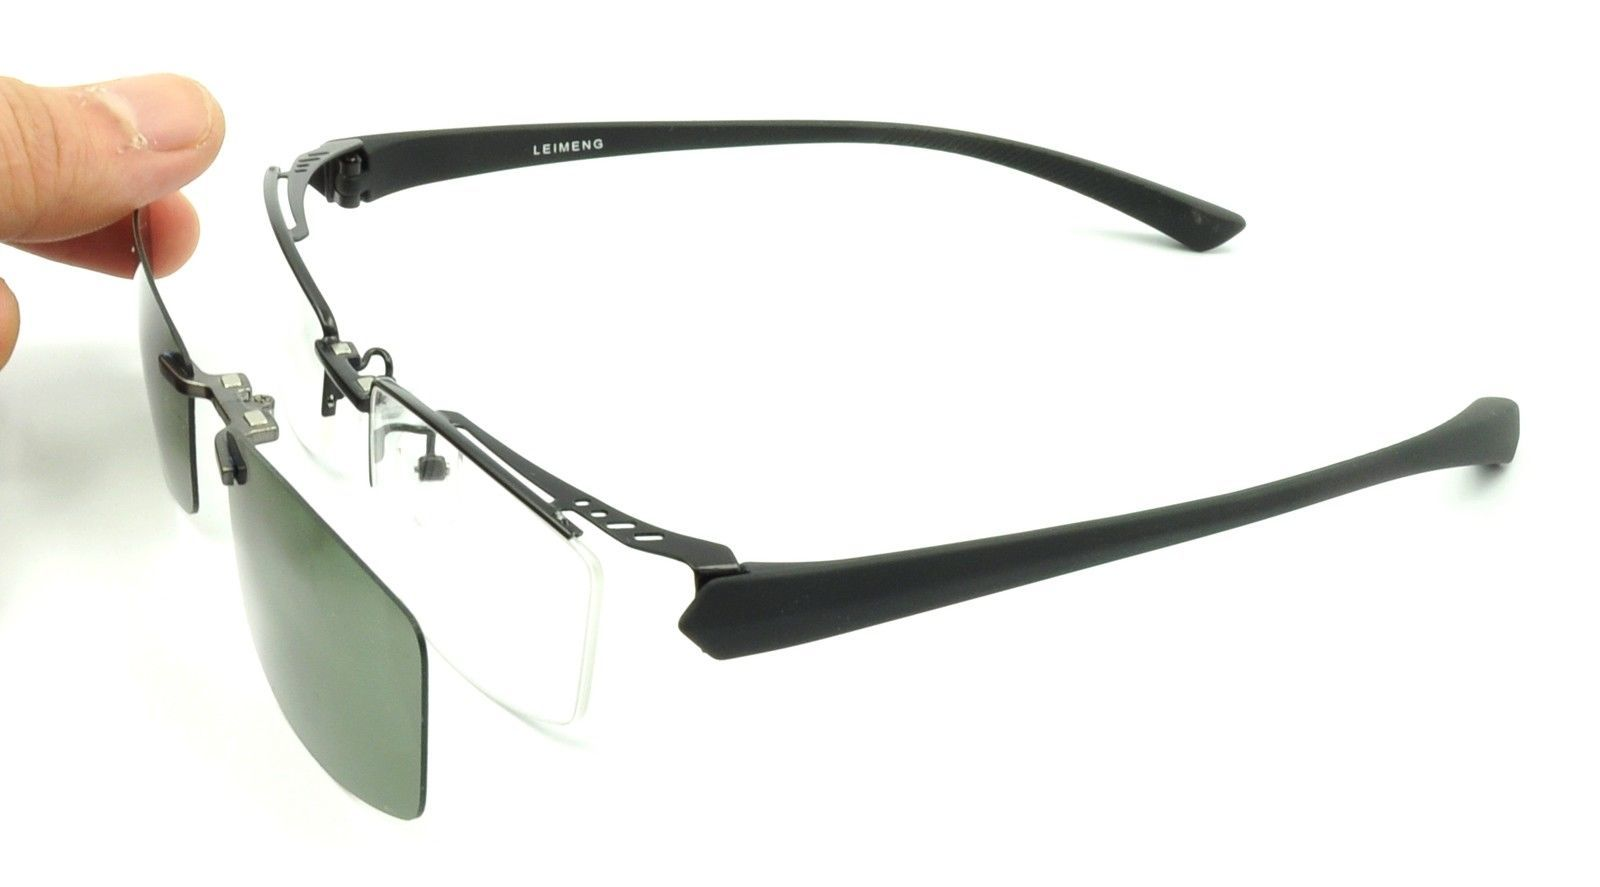 Eyeglass Frame With Magnetic Clip On Sunglasses : 2 Pcs Magnetic Clip-On Sunglasses Mens Half Rimless ...